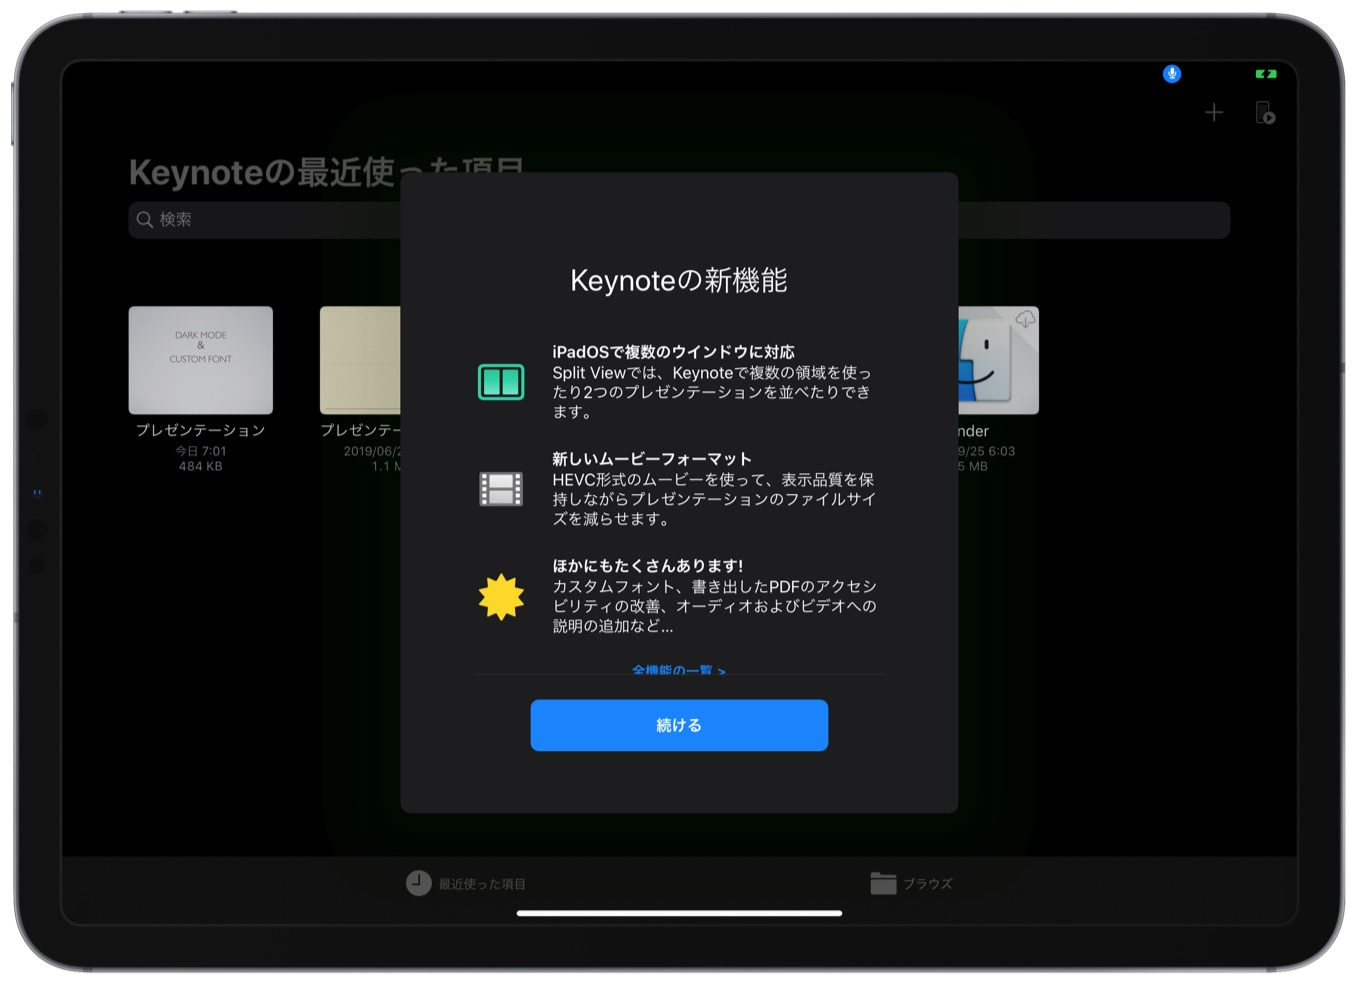 iWorks for iPadOS v5.2